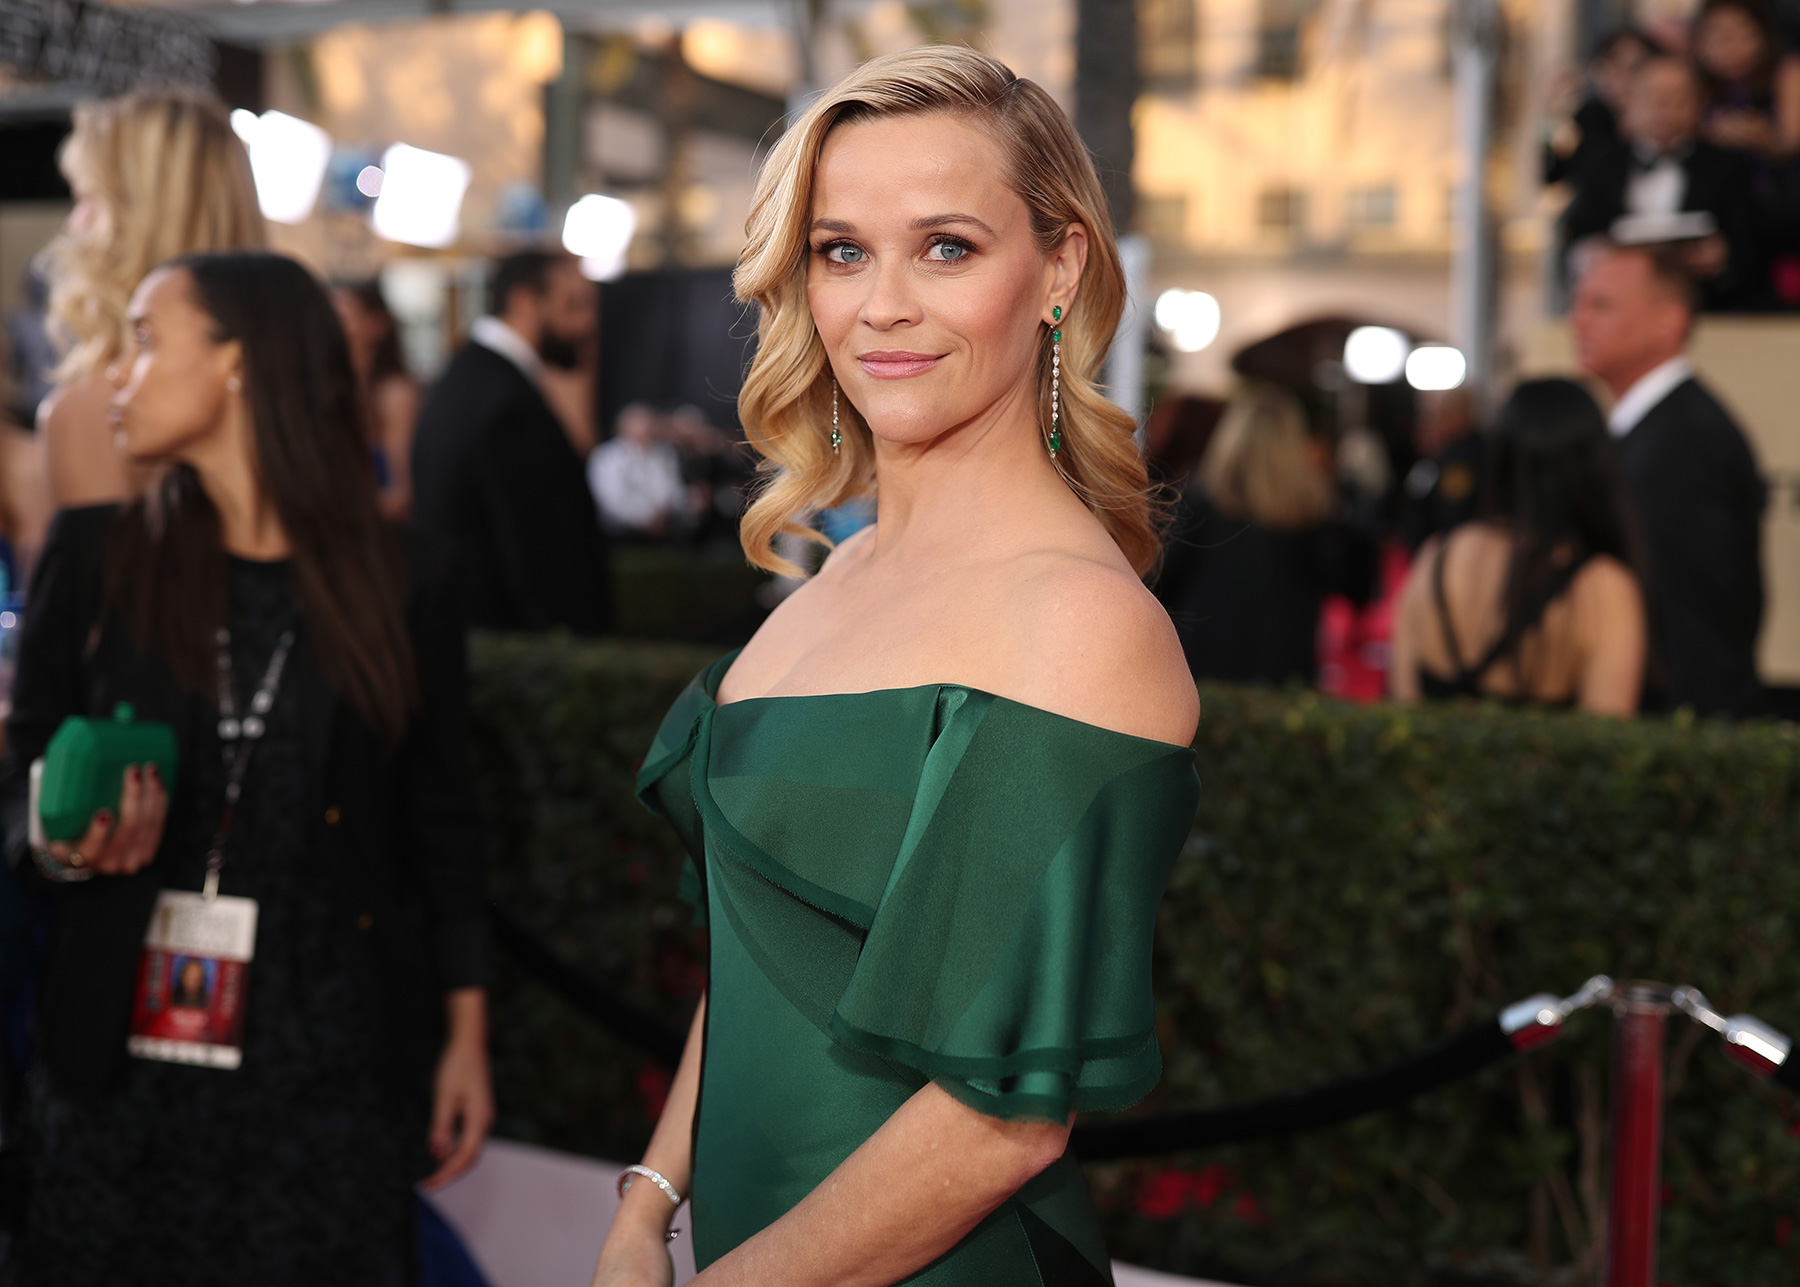 Reese Witherspoon attends the 24th Annual Screen Actors Guild Awards